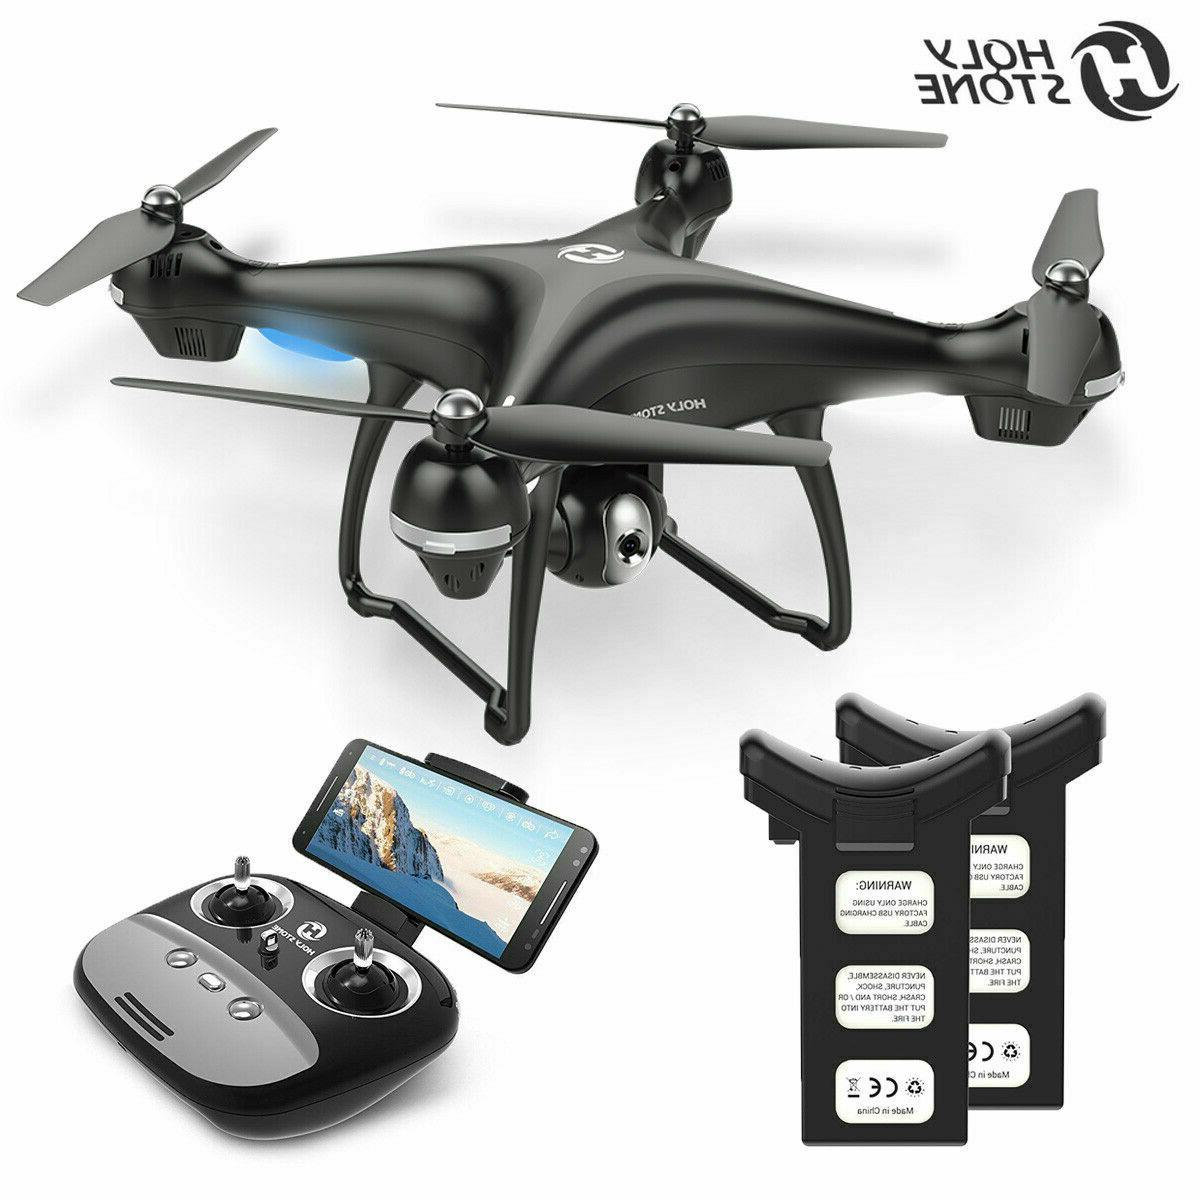 hs100 fpv gps drone with 1080p hd